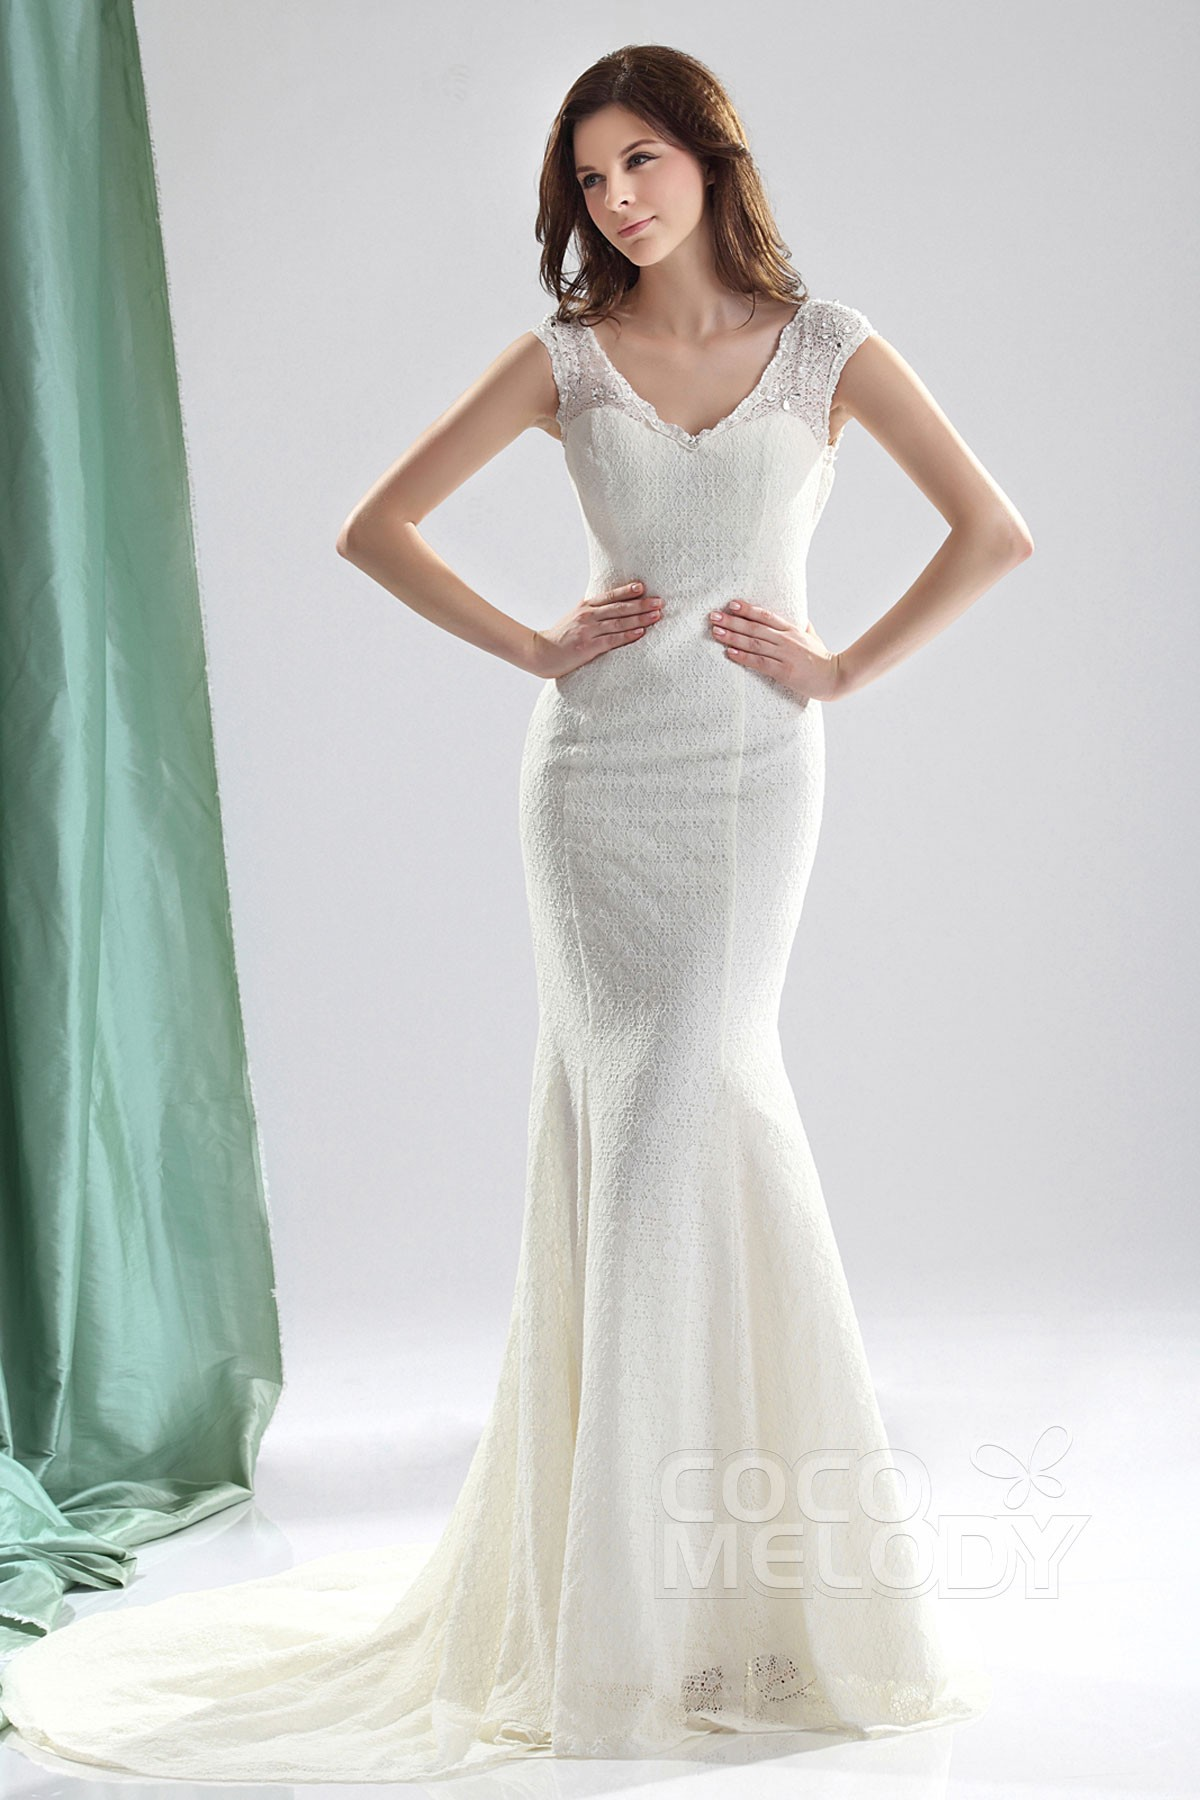 Cocomelody: Trumpet-Mermaid V-Neck Court Train Lace Wedding Dress ...